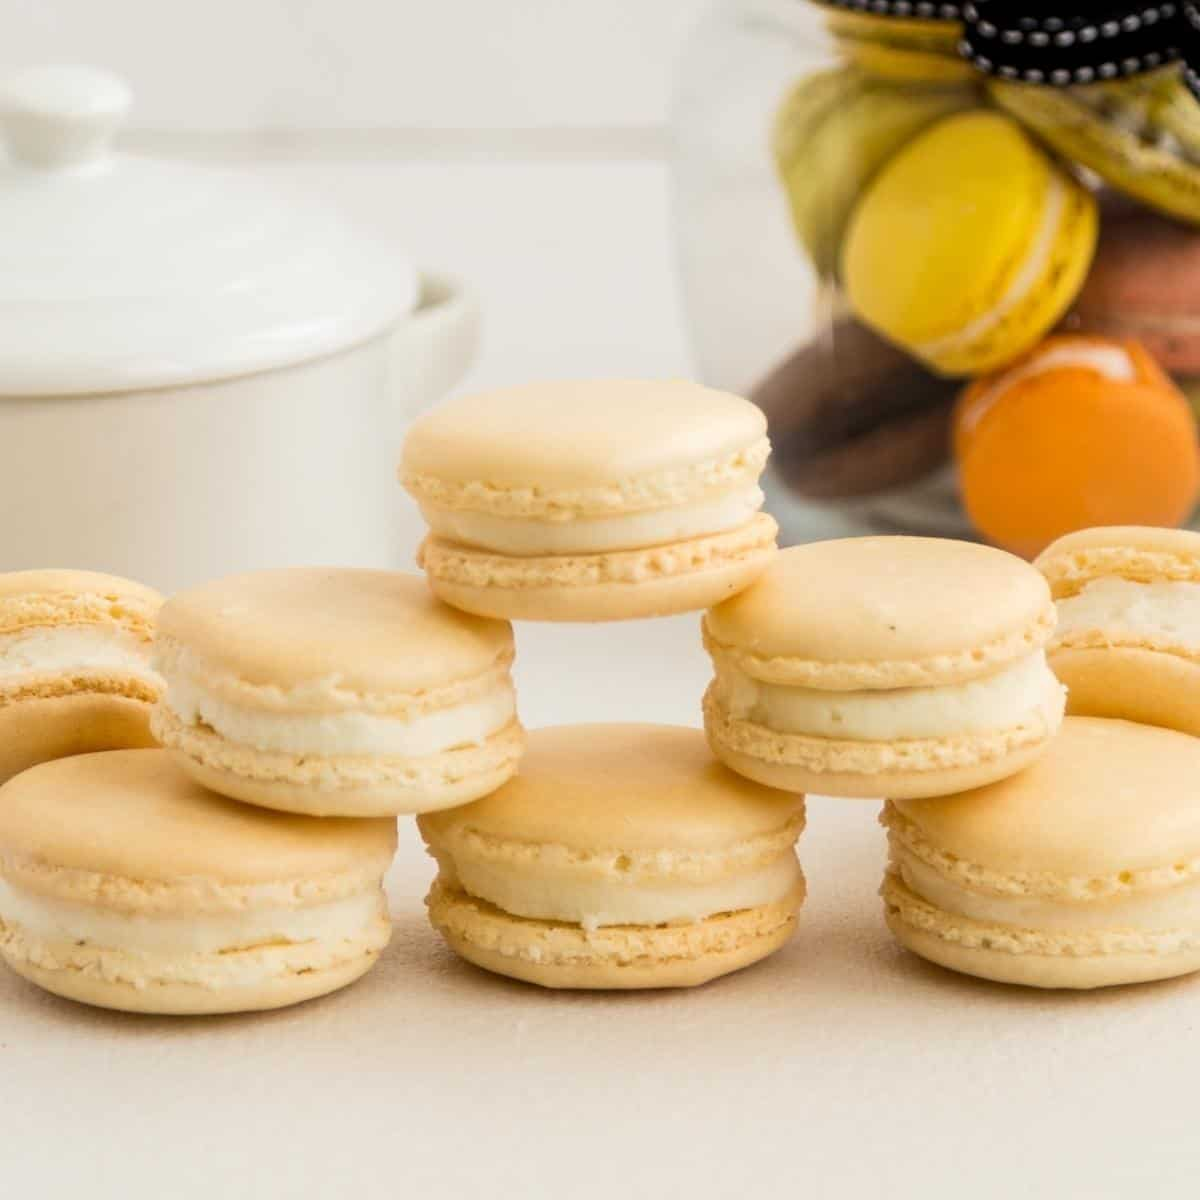 Macarons on the table with buttercream